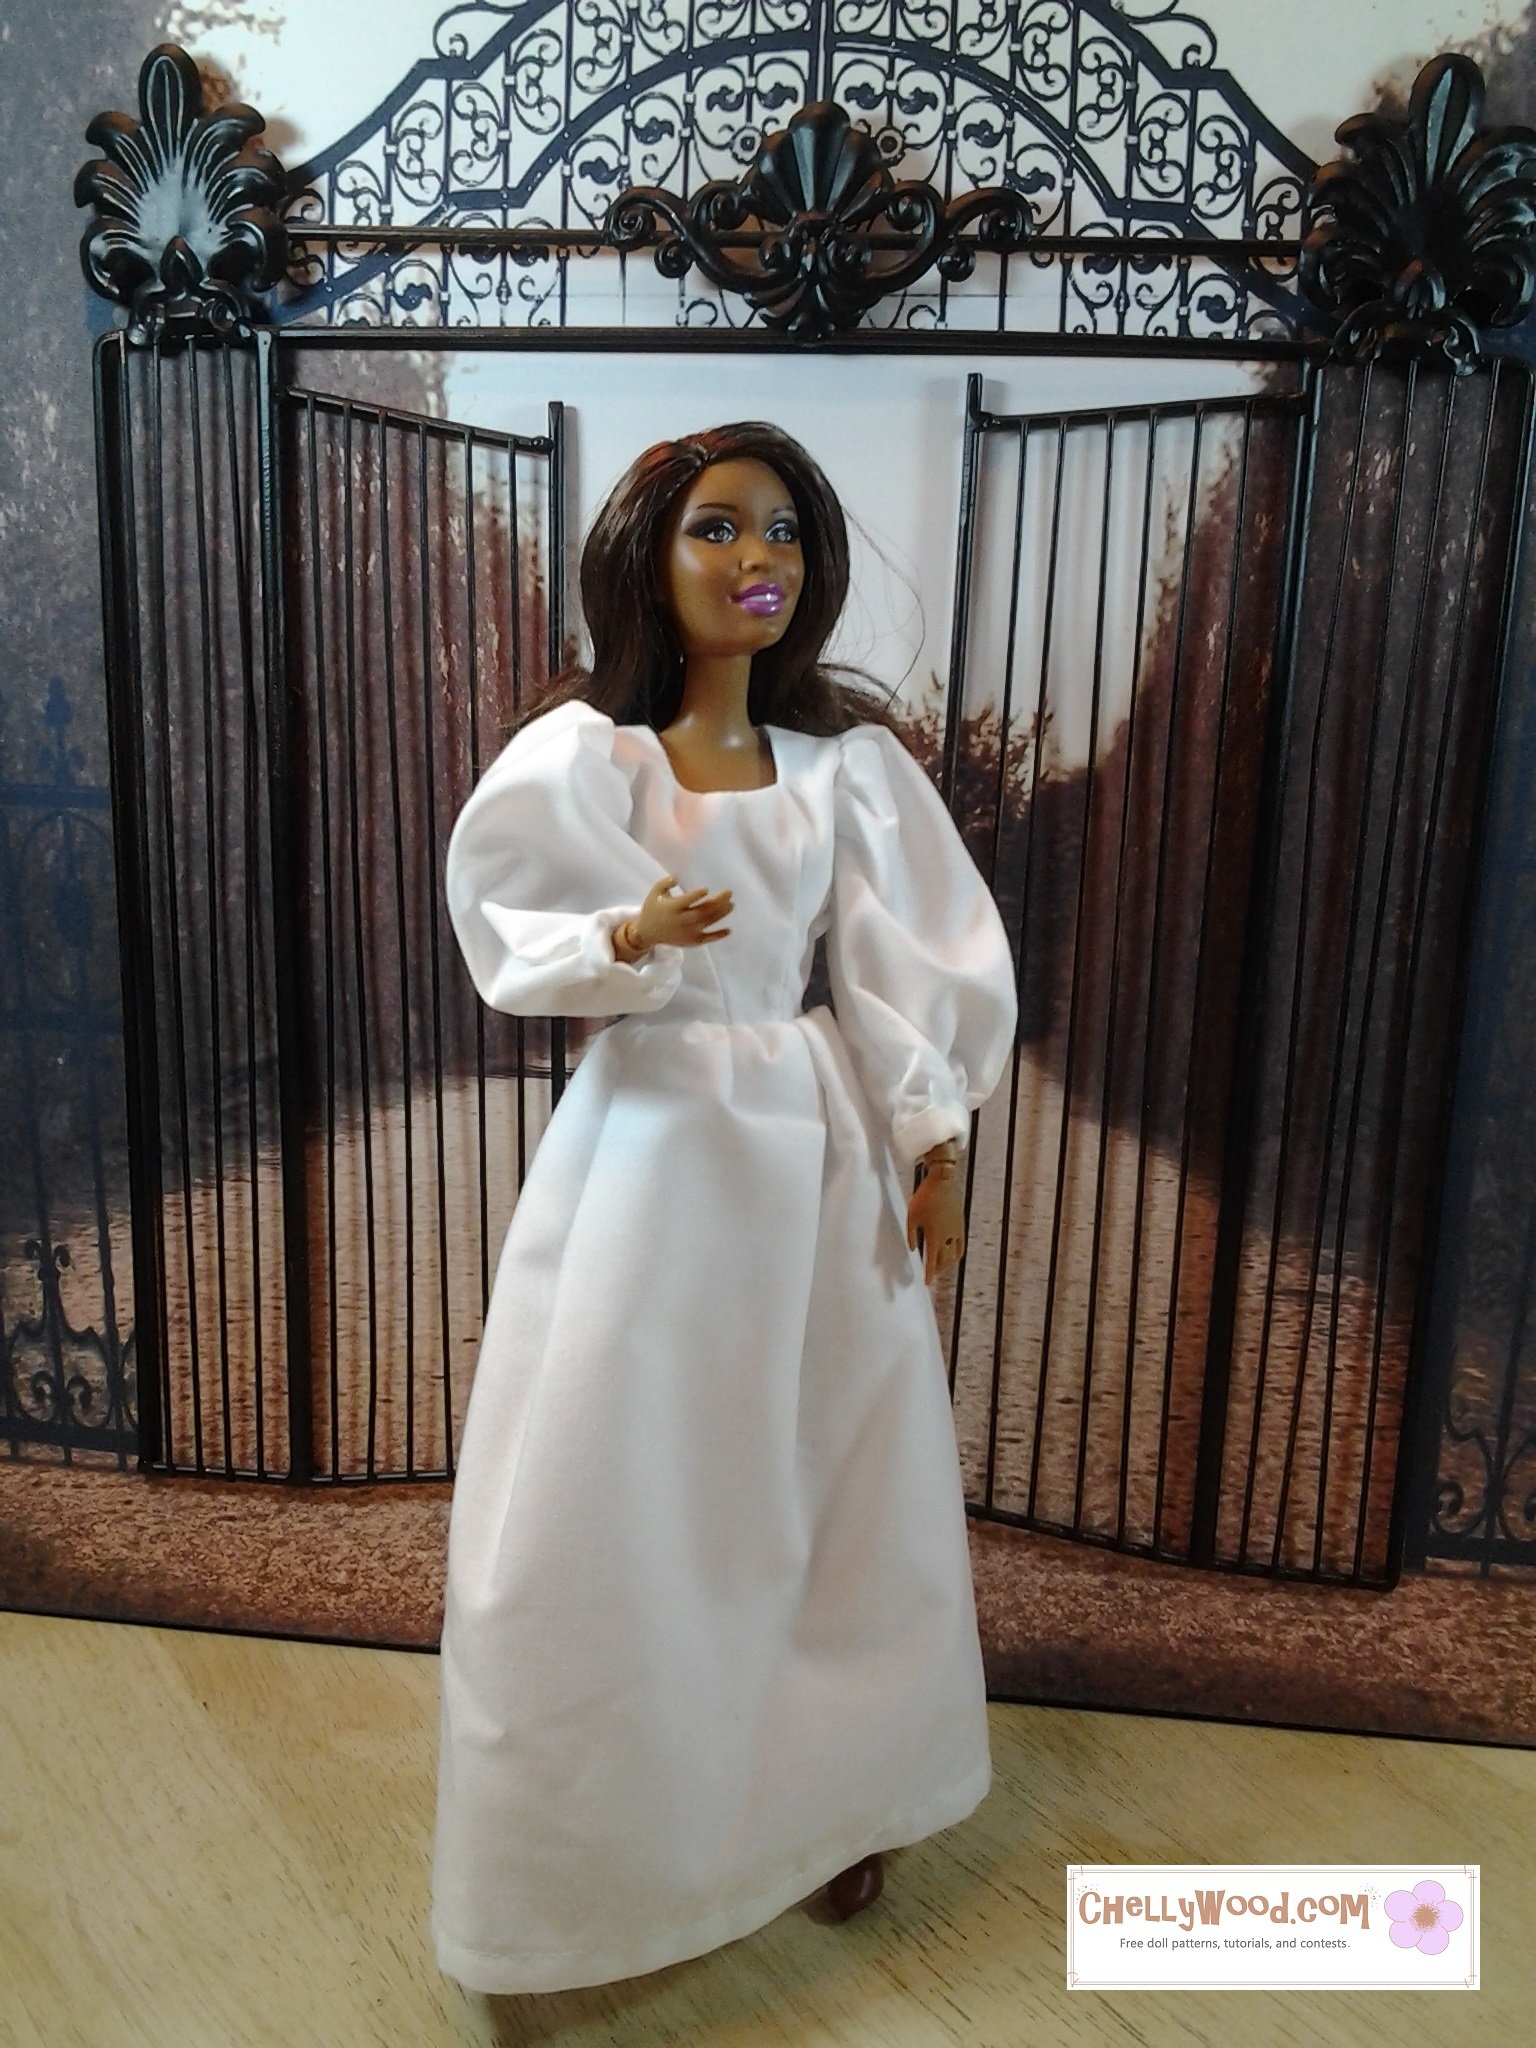 This is a photograph of an African American Barbie doll standing in front of a garden gate, wearing a shift gown with puffy sleeves and a narrow waist. This basic dress pattern is used for the undergarments in a number of Renaissance dress costumes on the ChellyWood.com website (for fashion dolls).